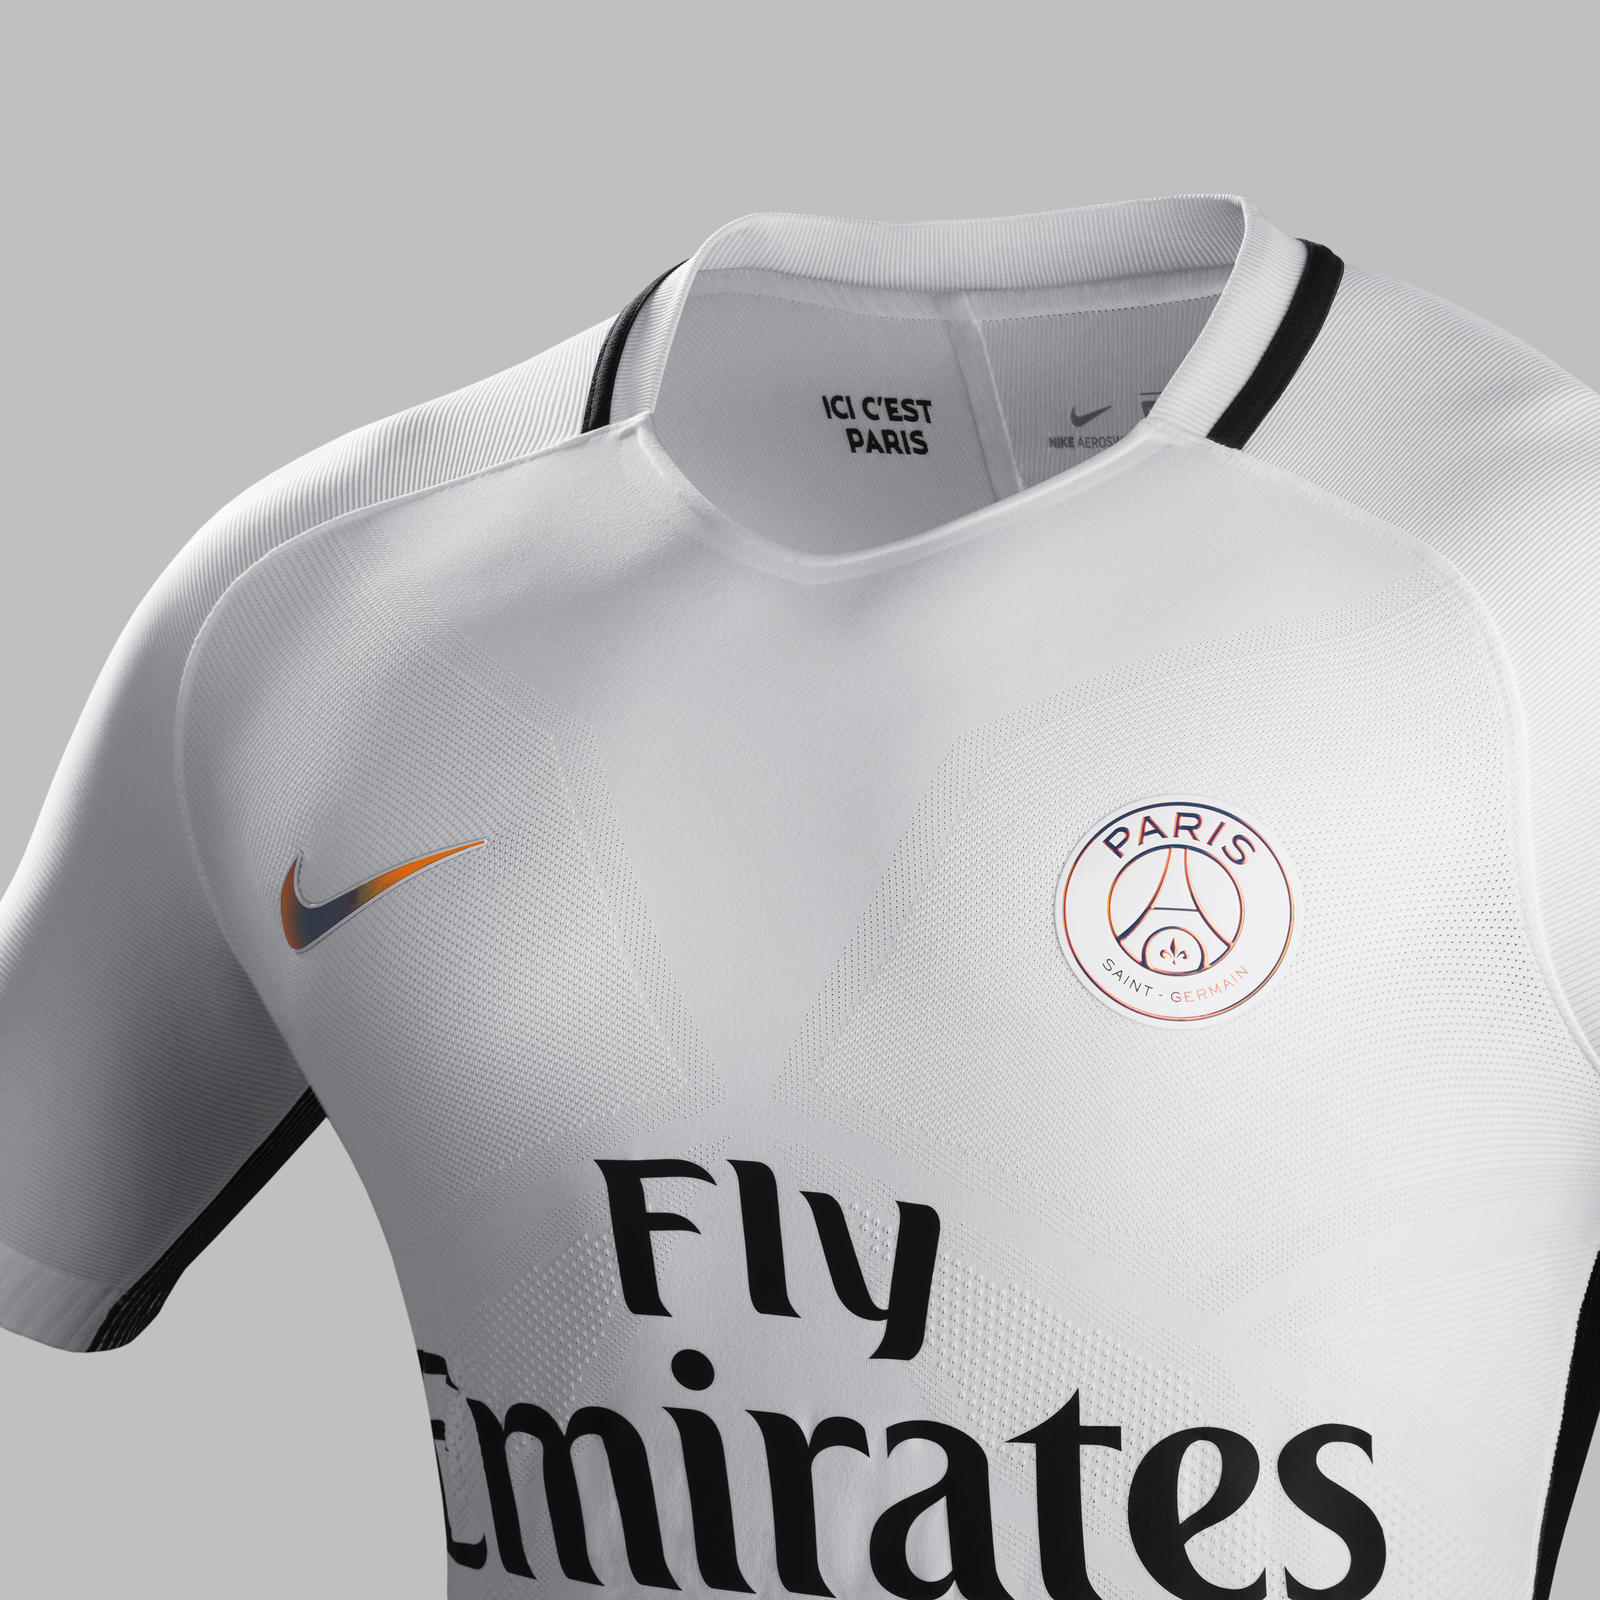 Fa16 CK Comms 3RD Venting Match PSG R. PARIS Saint-Germain 3rd kit 2016-2017 AeroSwift  technology. Fa16 CK Comms 3RD Crest Match PSG R fa1d007a2